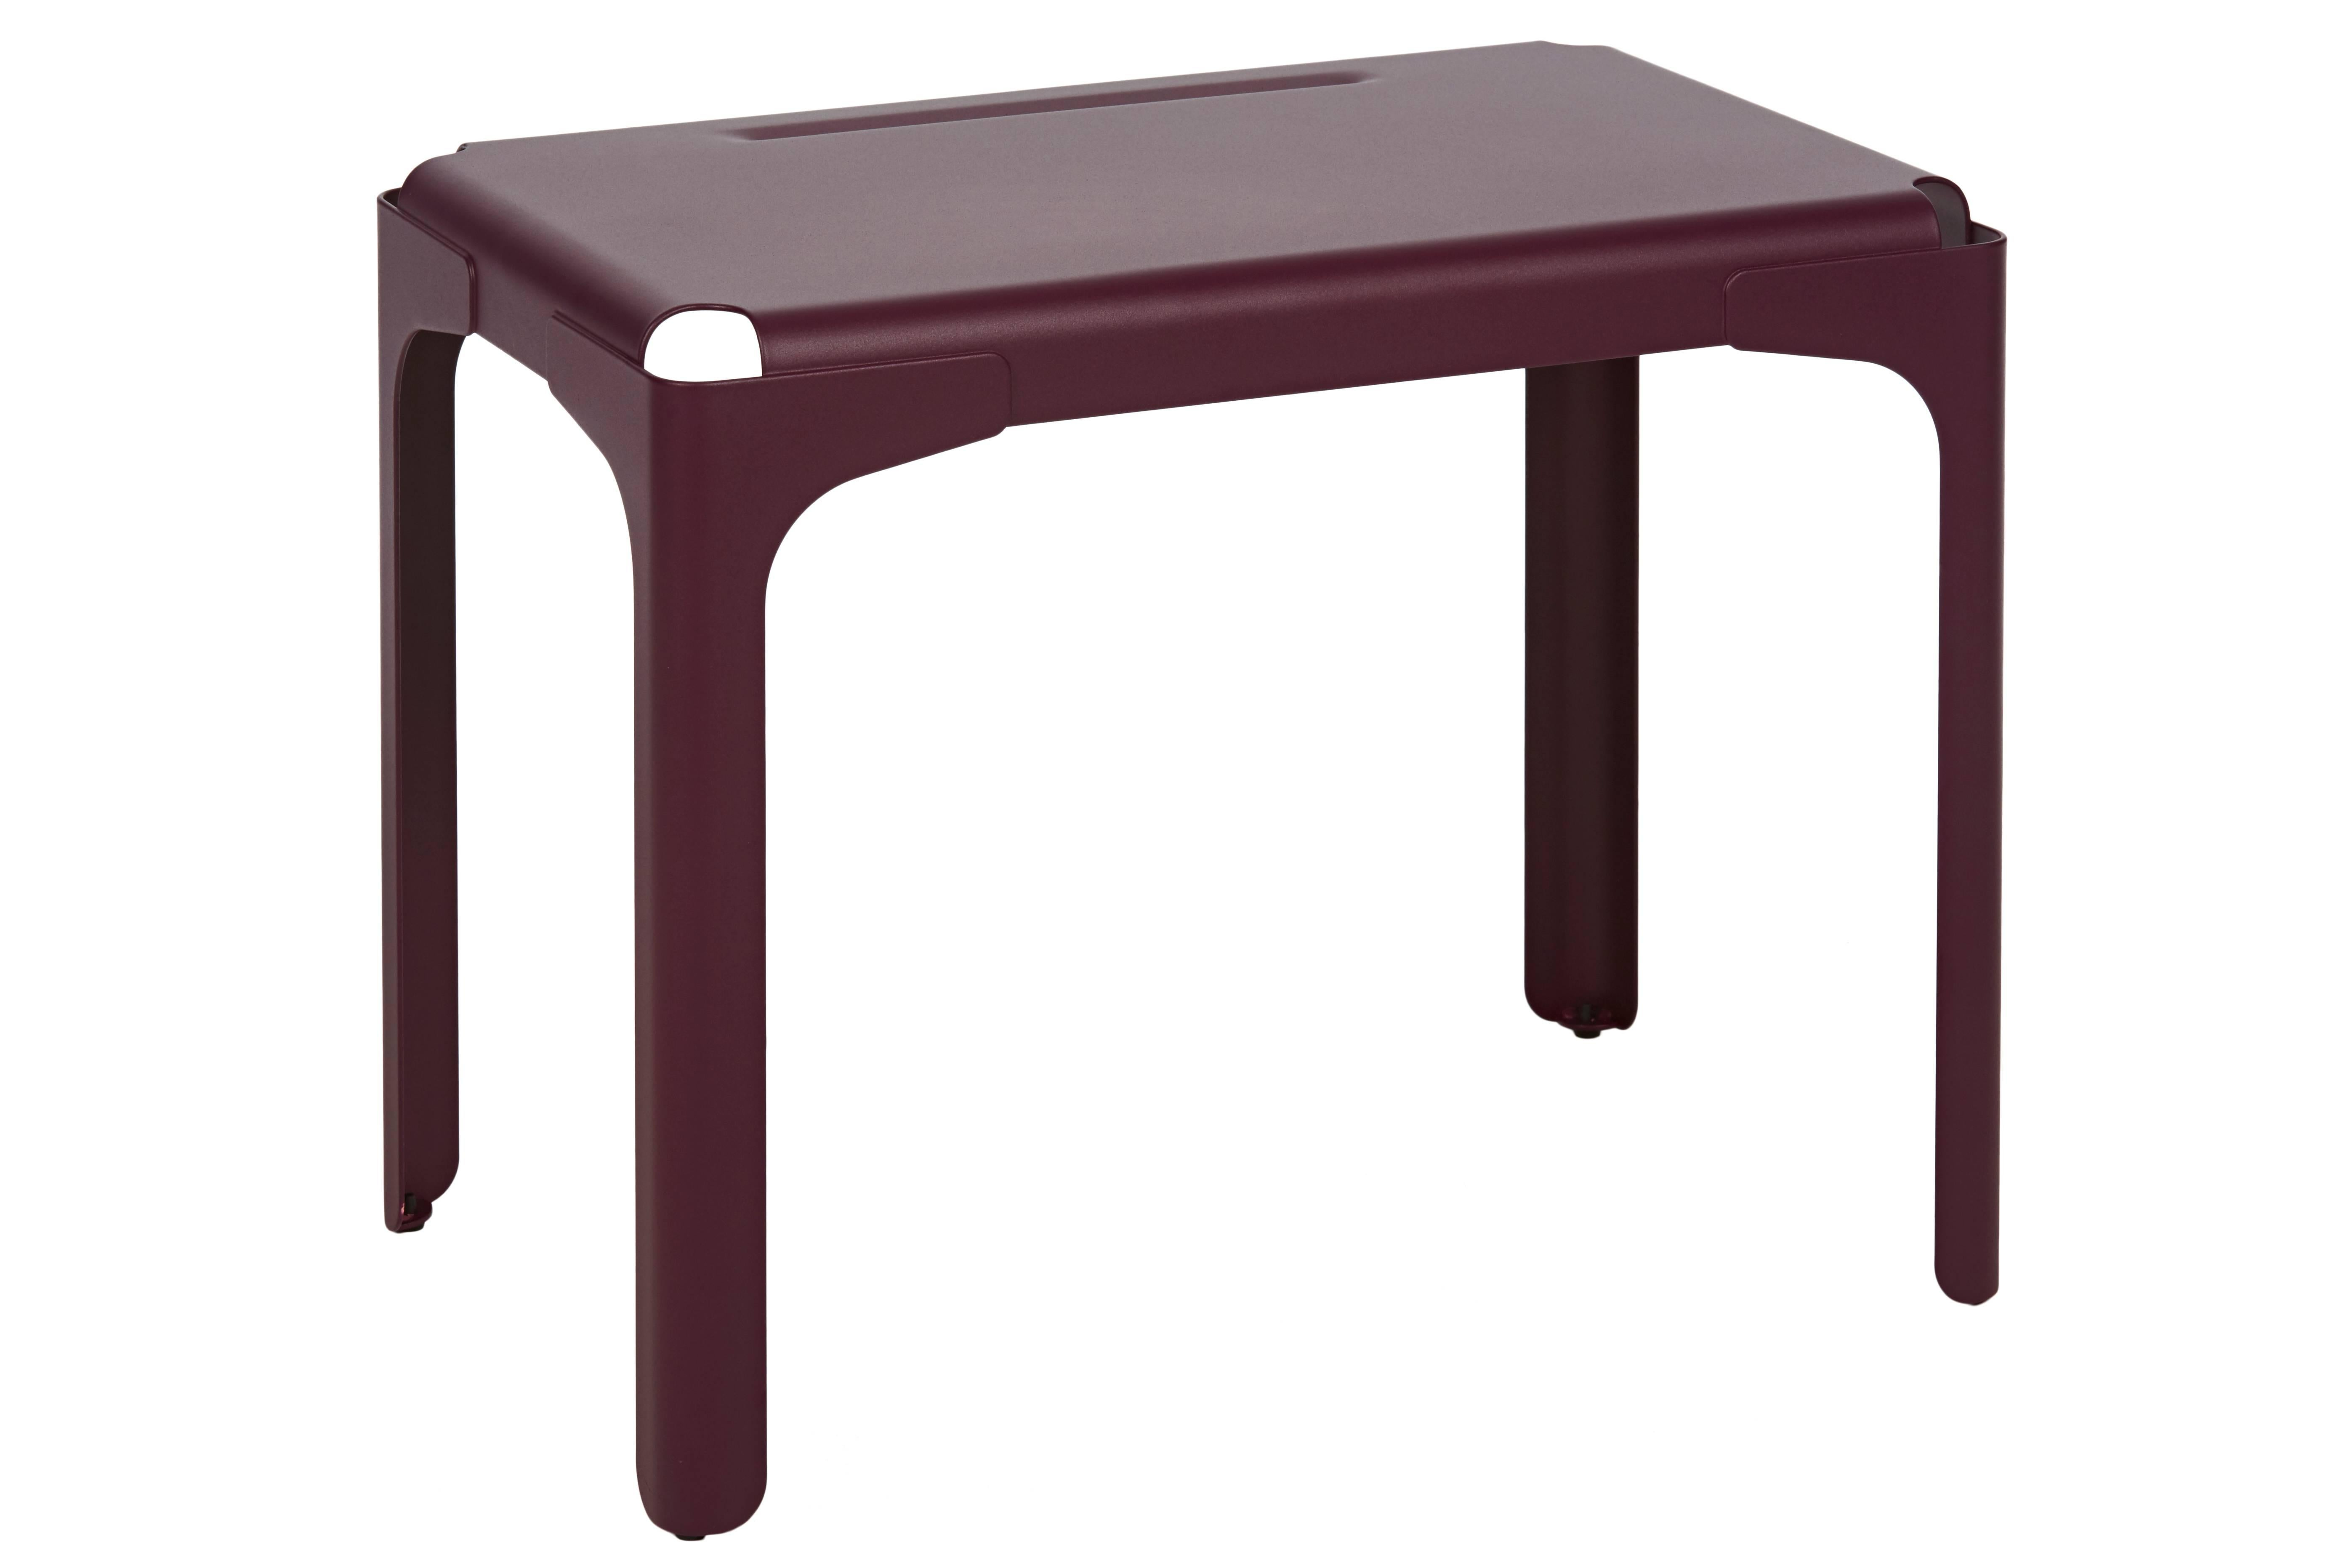 Bureau Tolix Rhino Kids Desk In Aubergine By Tolix